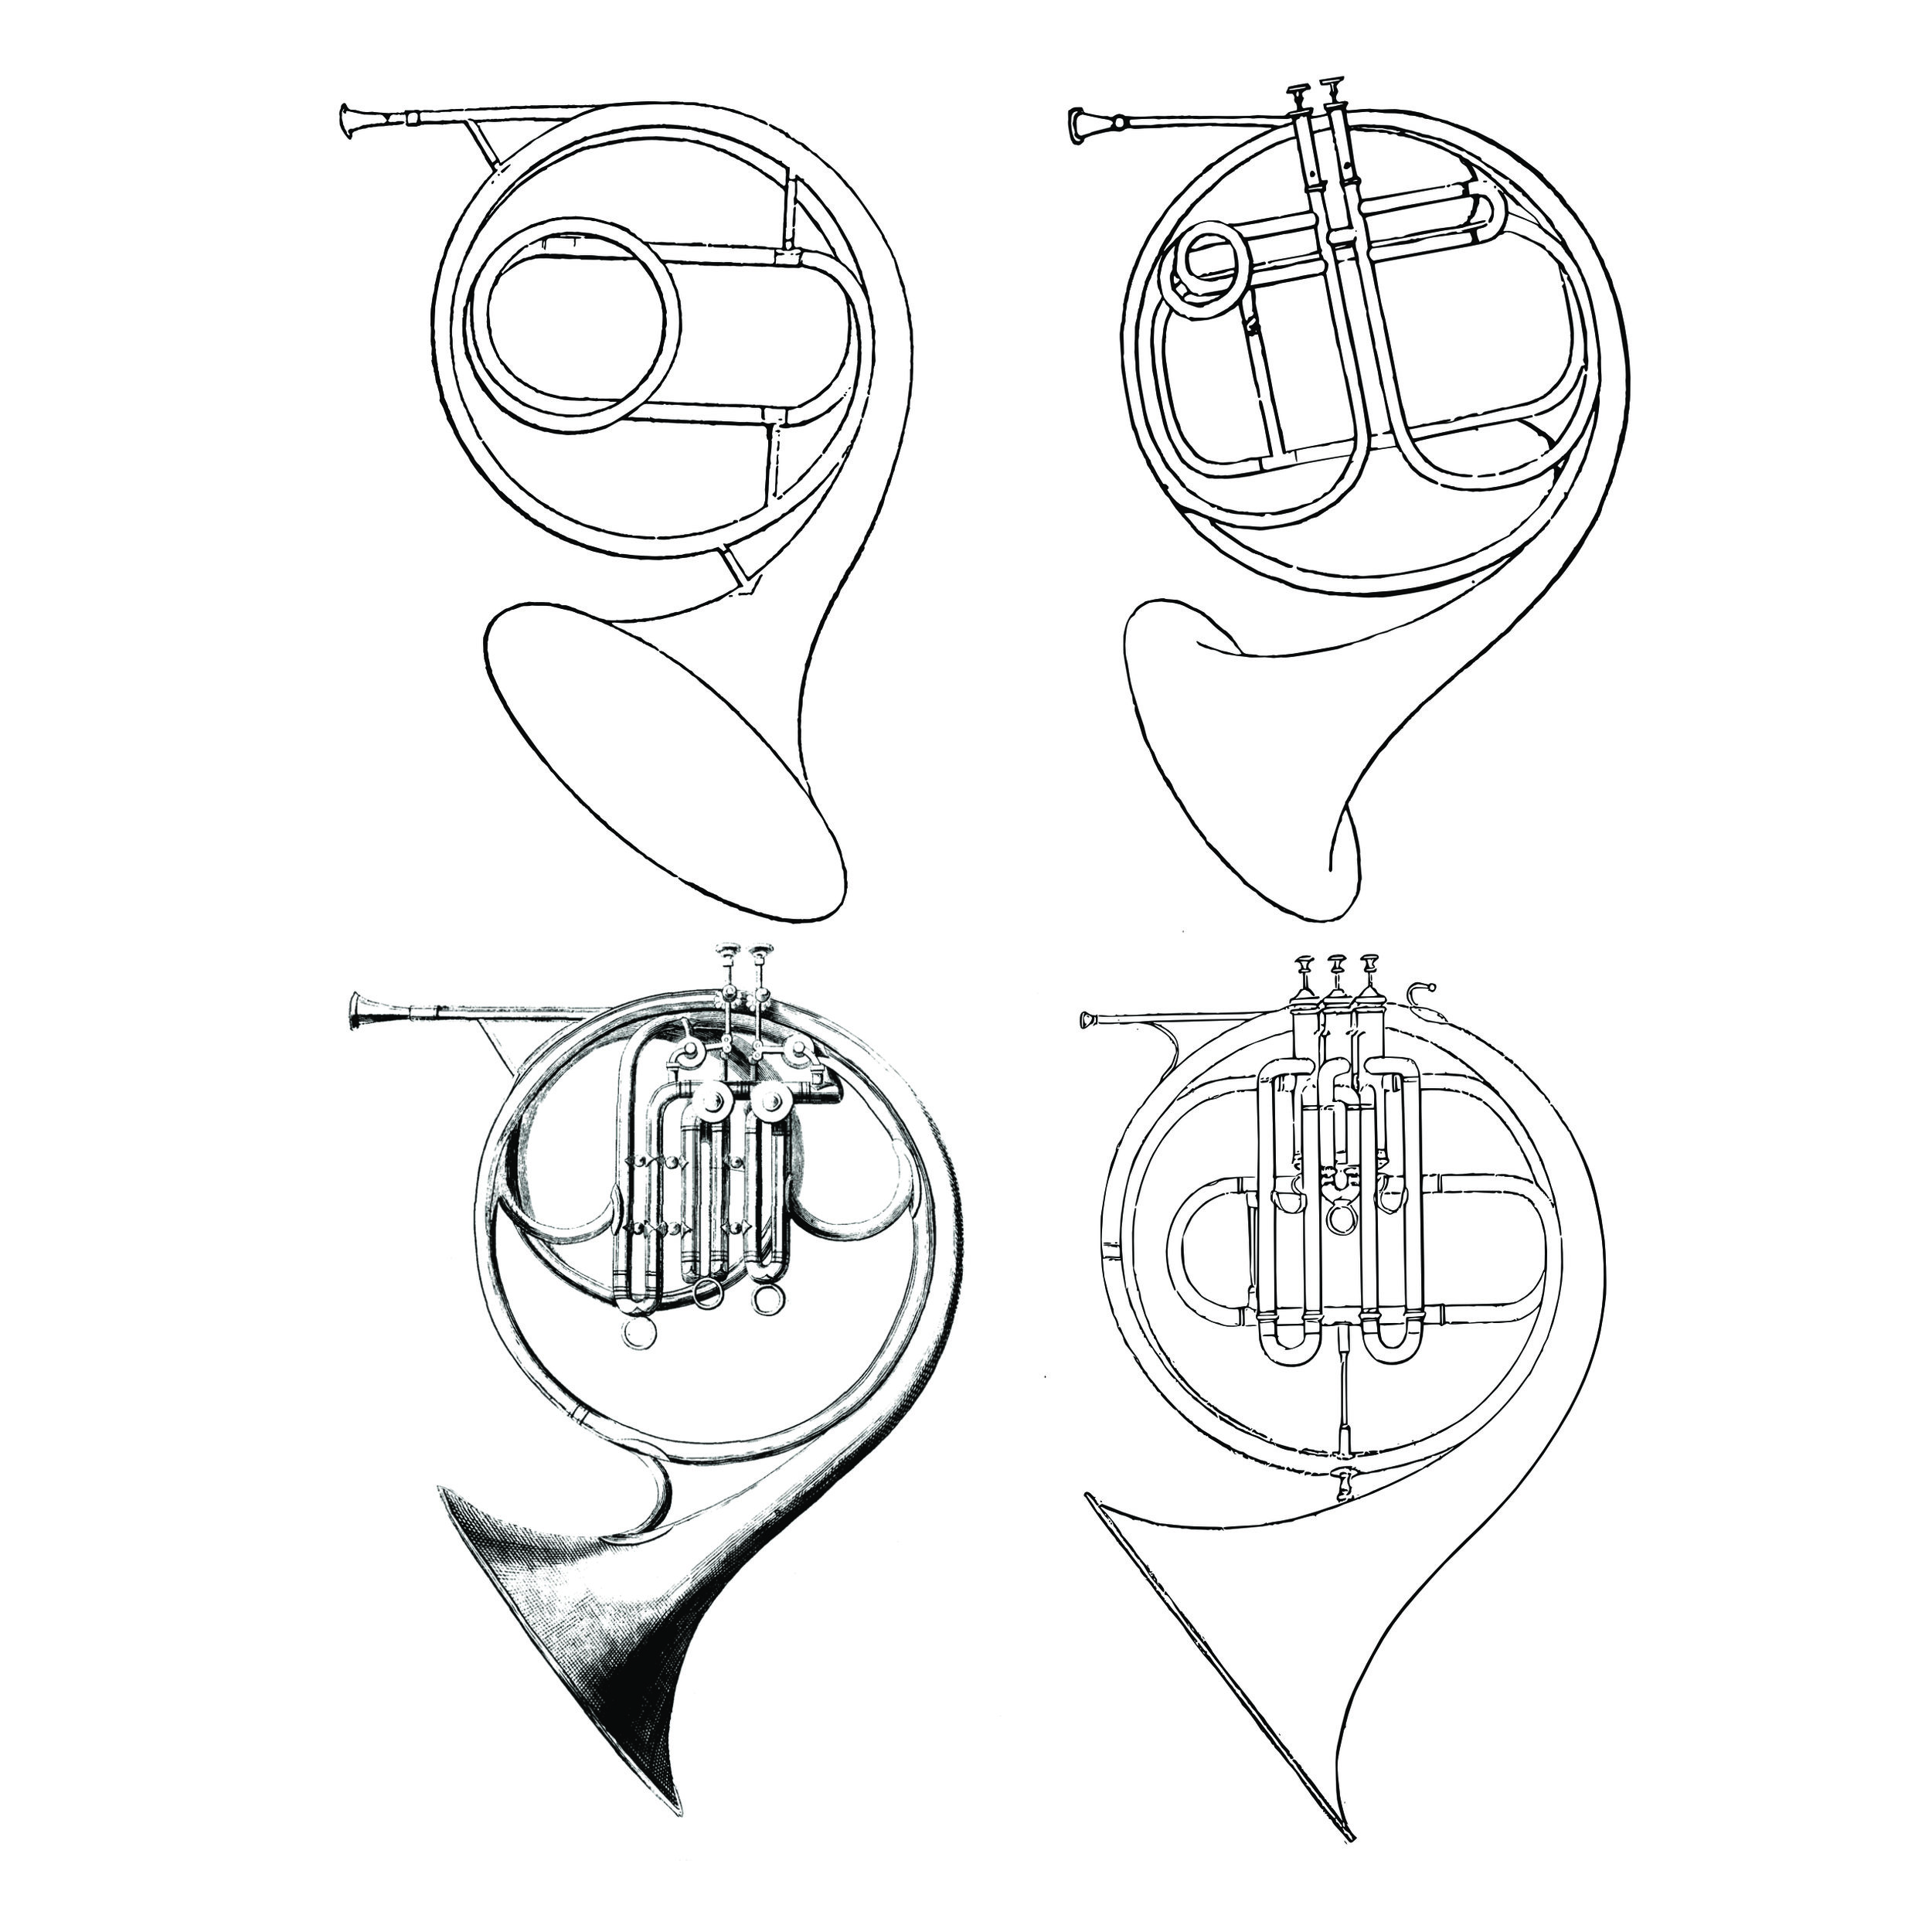 "Top left: Cor solo (Raoux) from Gallay's  Méthode , Top right: Two Stölzel-valved horn (Raoux) from Gounod's  Méthode   Bottom left: ""Cor Chromatique"" (Halary) from Meifred's  Méthode  (c.1840), Bottom right: ""Cor Chromatique"" (Halary) from Meifred's  Méthode  (2nd edition c.1849)."